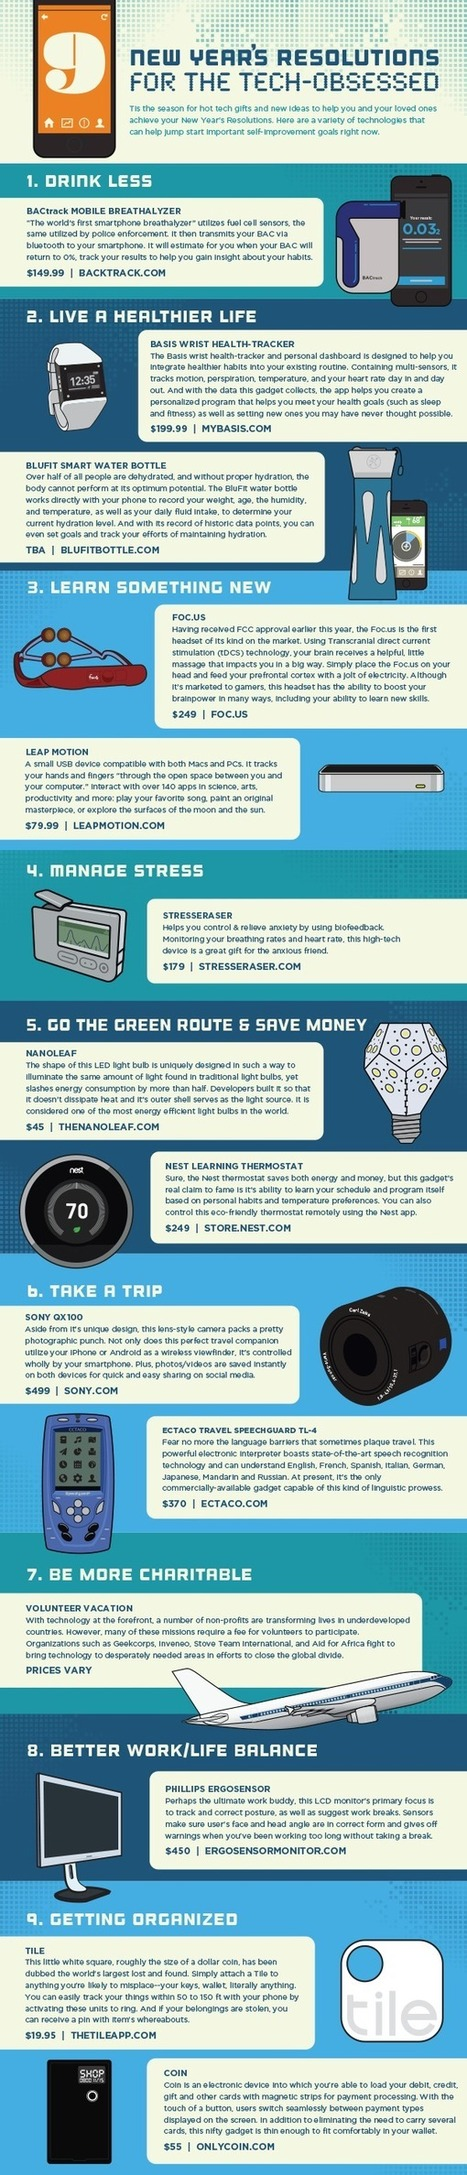 New Year's resolutions for the tech-obsessed [infographic]   Education Technology   Scoop.it